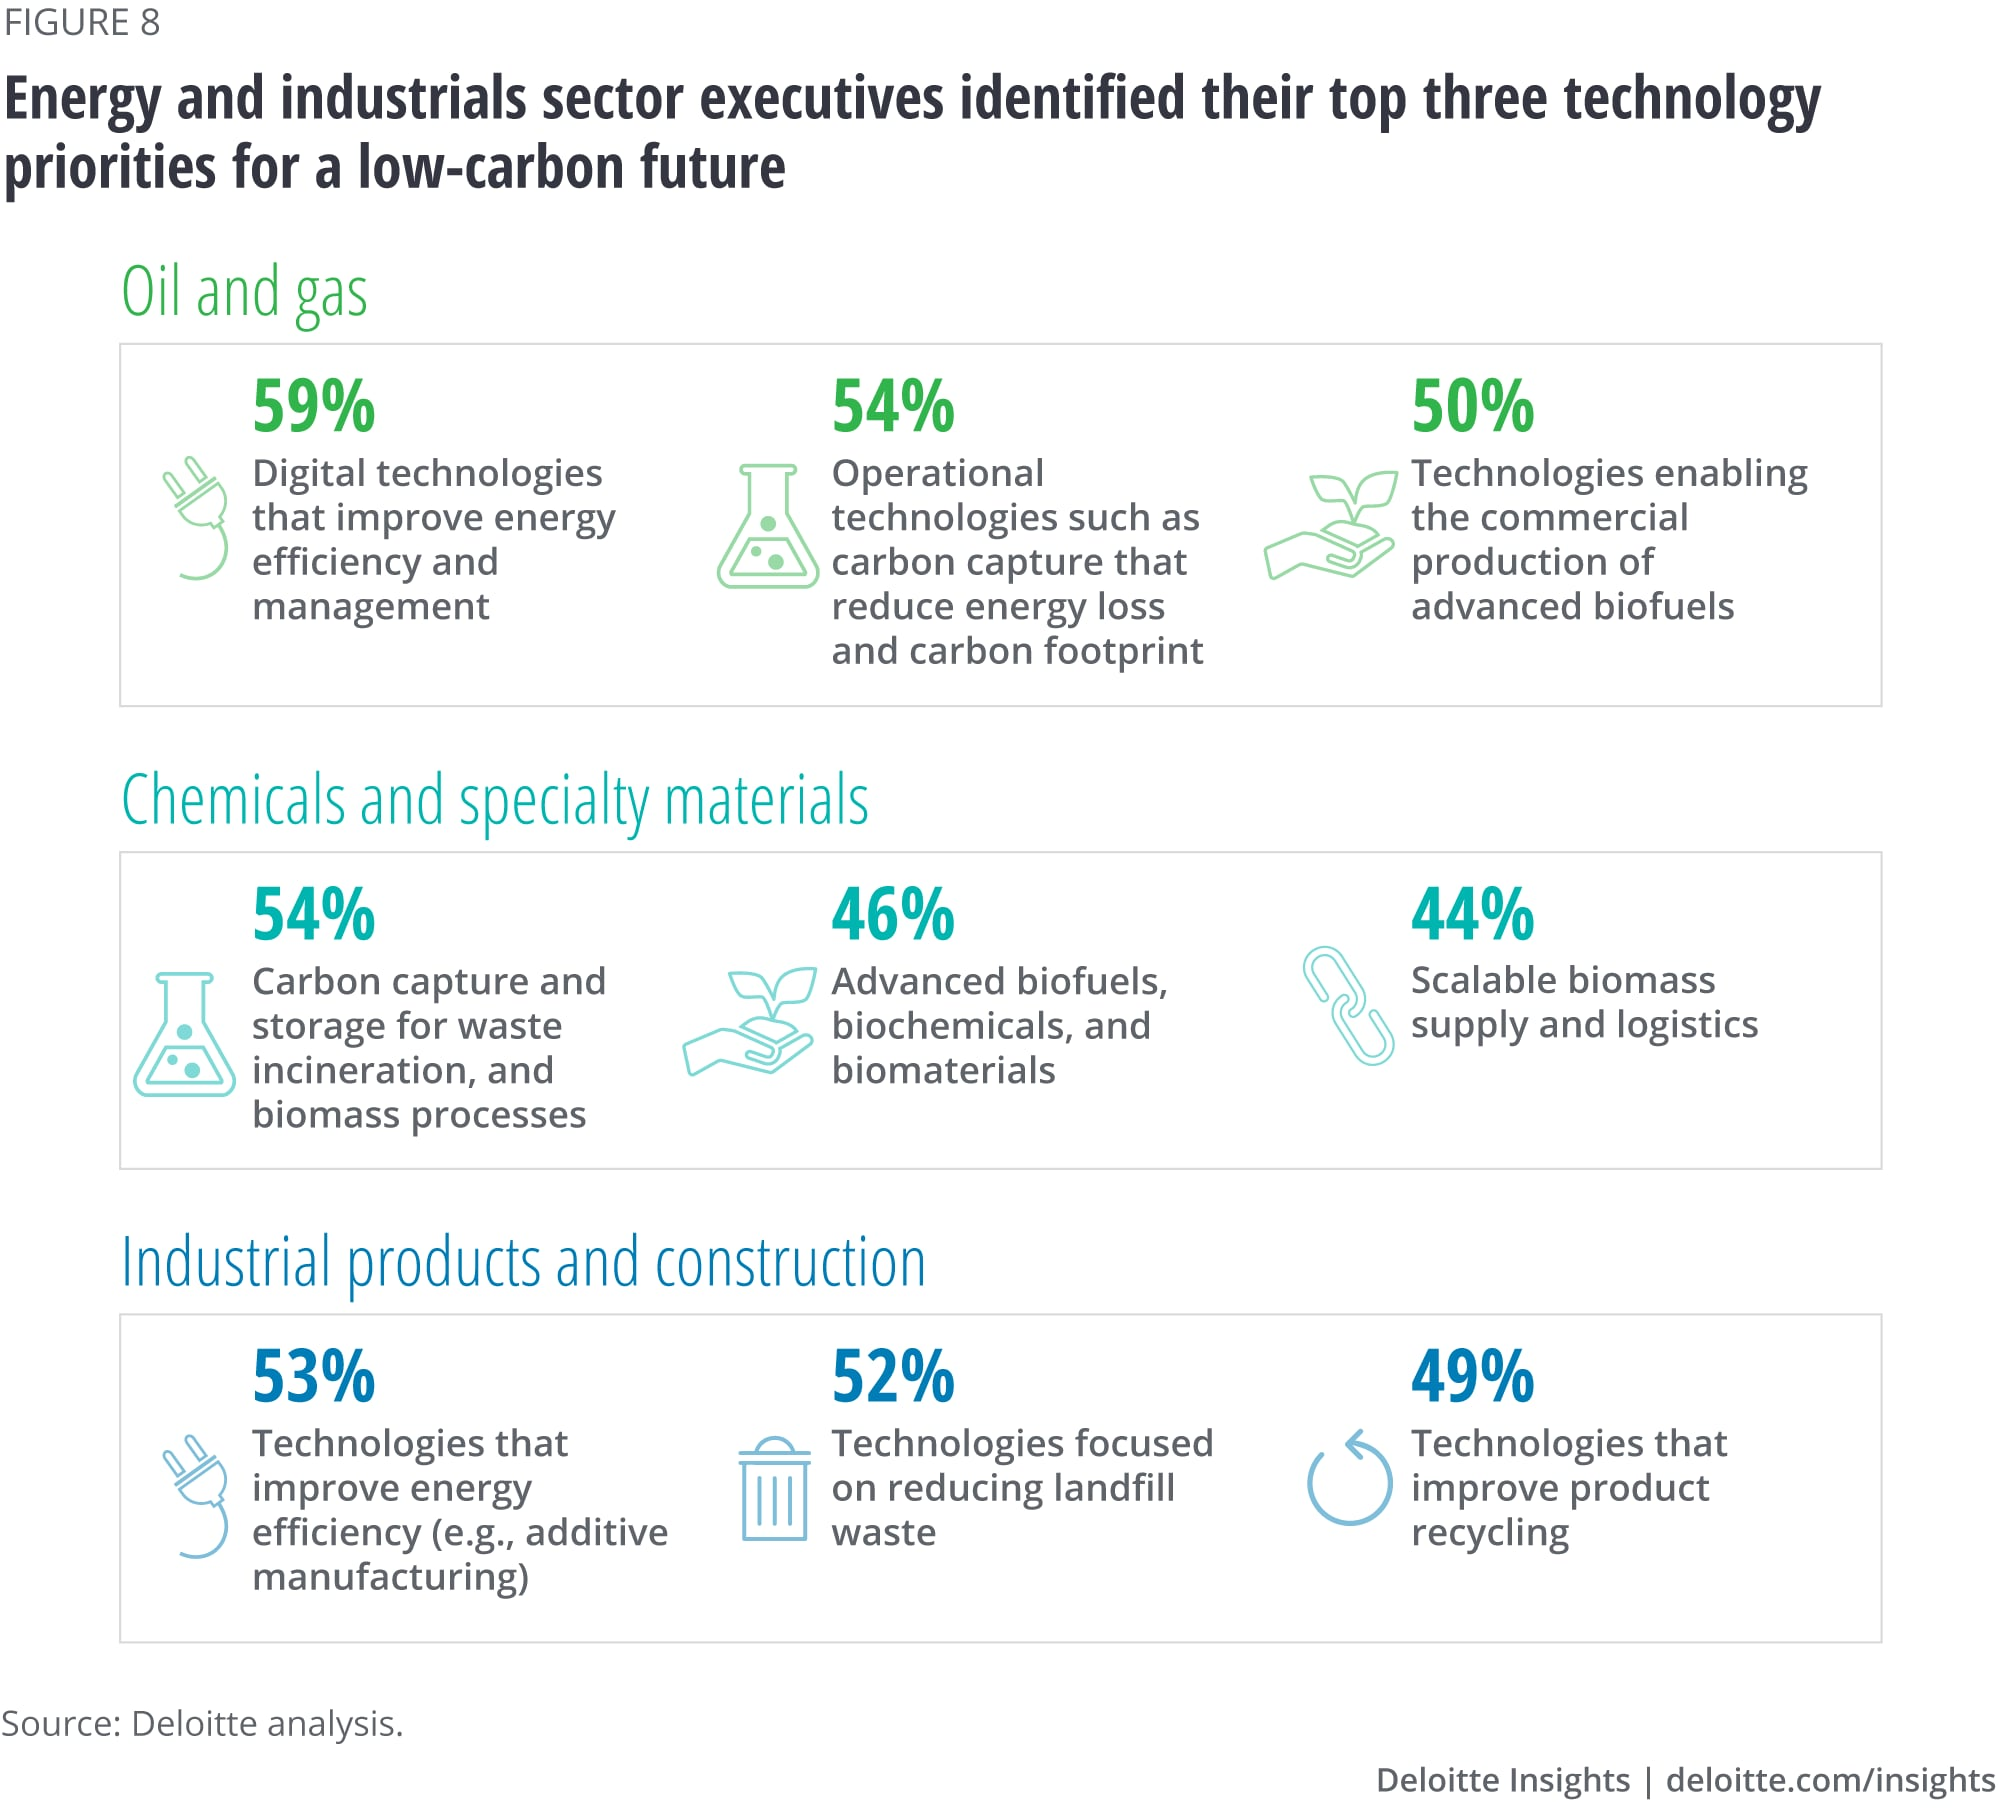 Energy and industrials sector executive respondents identified their top three technology priorities for a low-carbon future